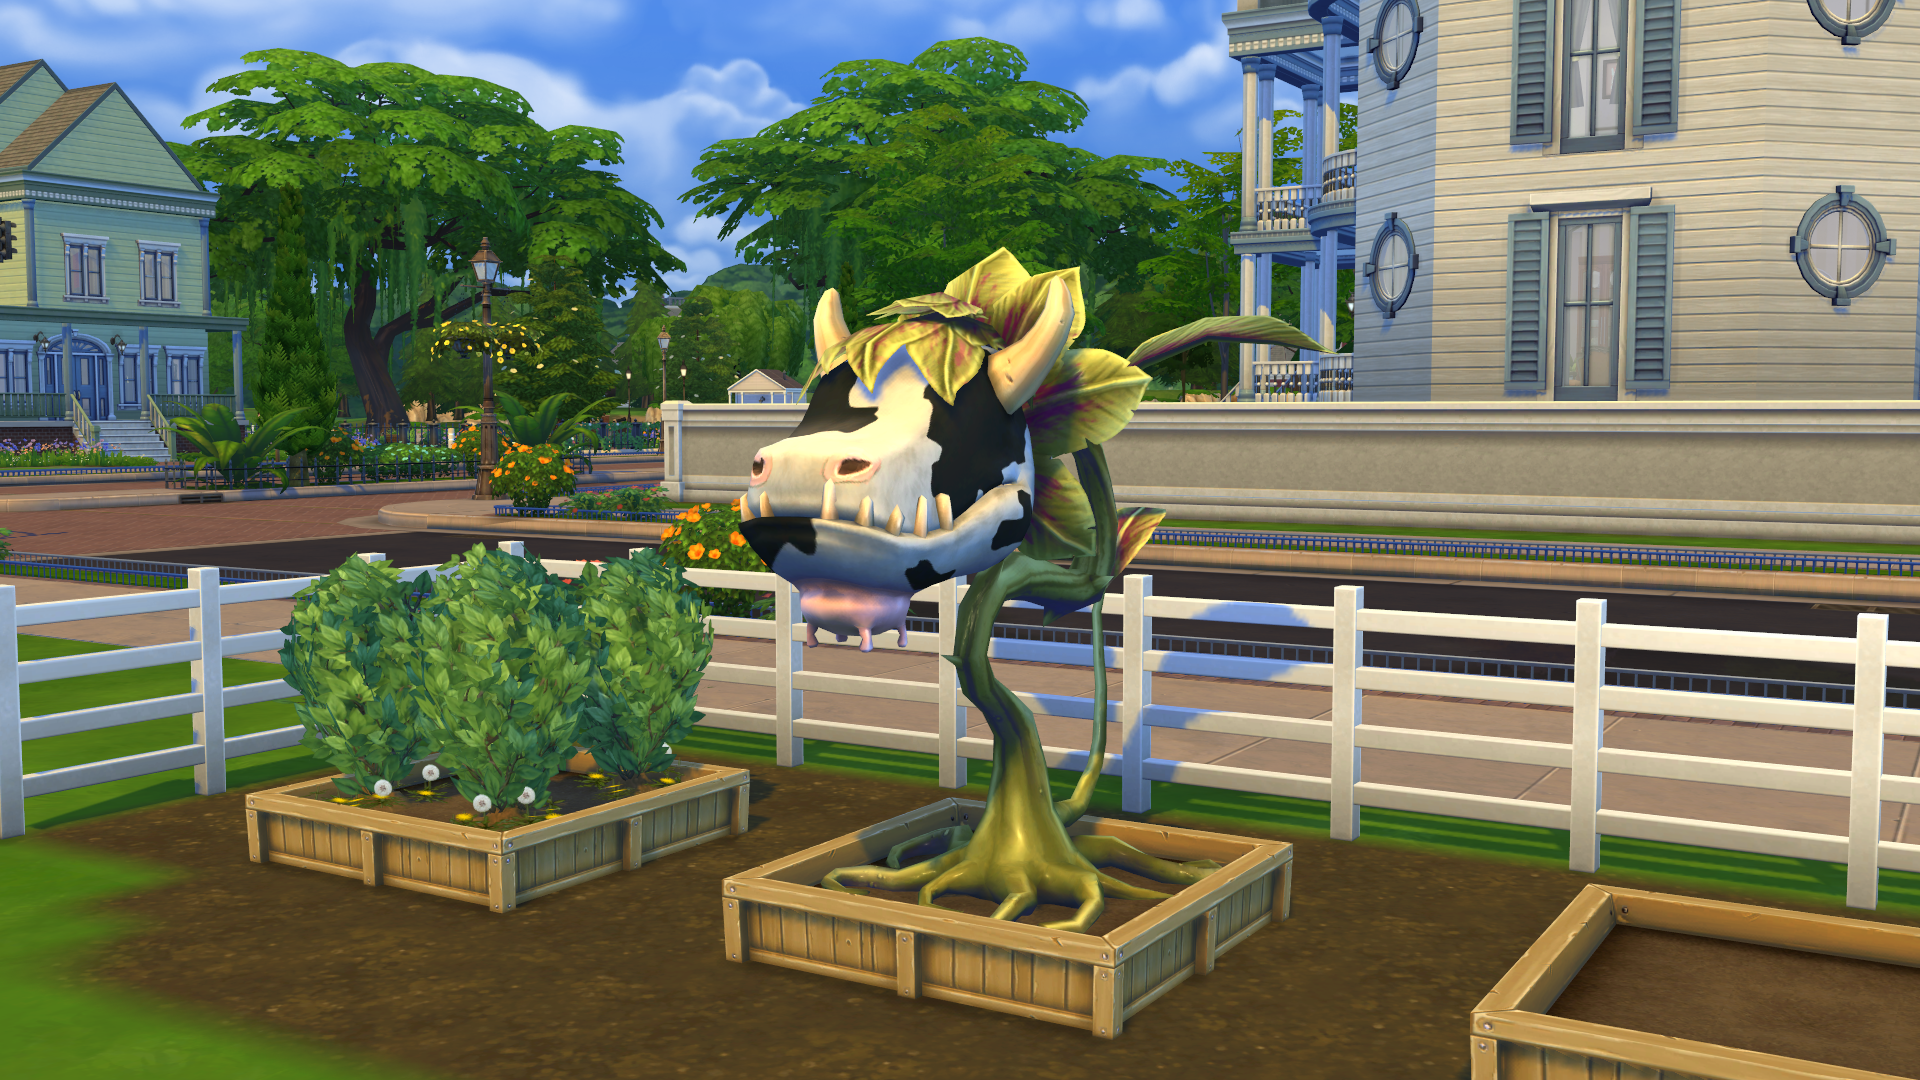 Guide How To Get a Cowplant in The Sims 32   SimsVIP